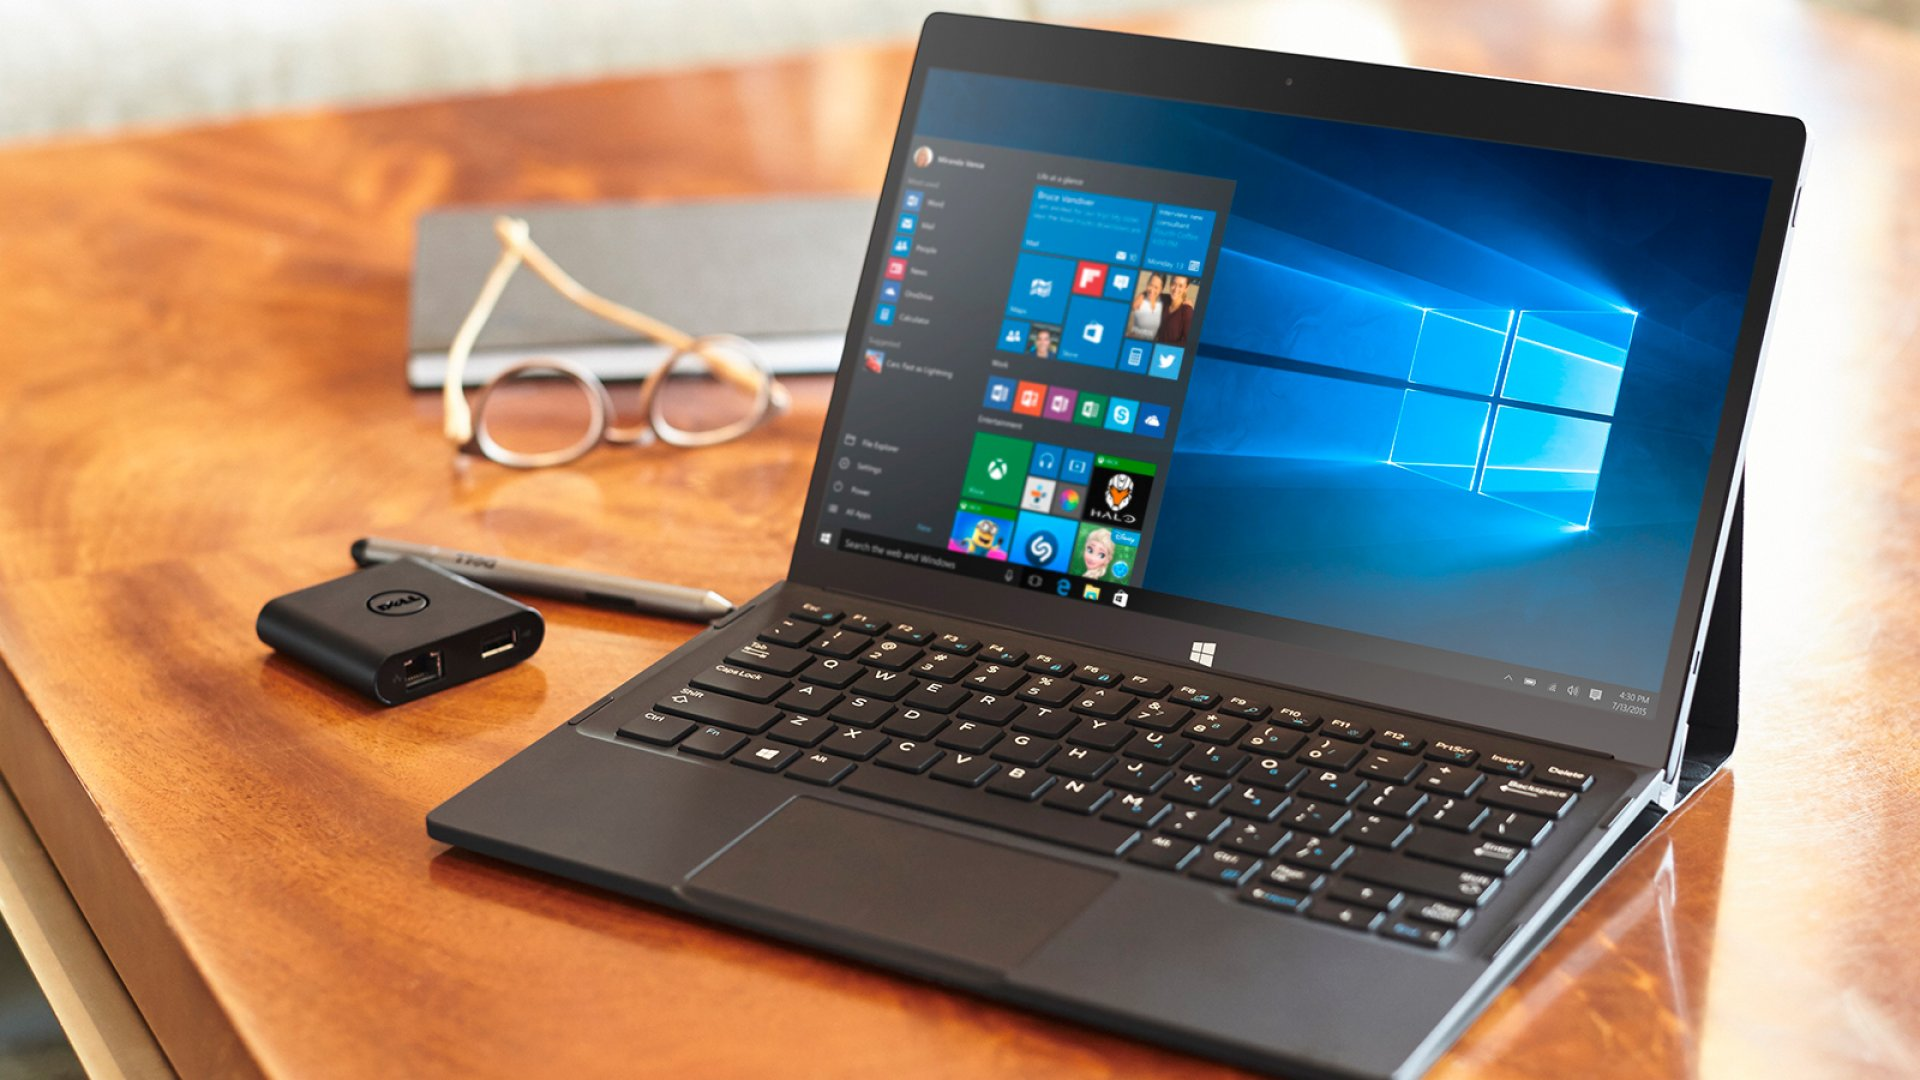 Dell Debuts theSuper-Smart XPS 12 at CES 2016